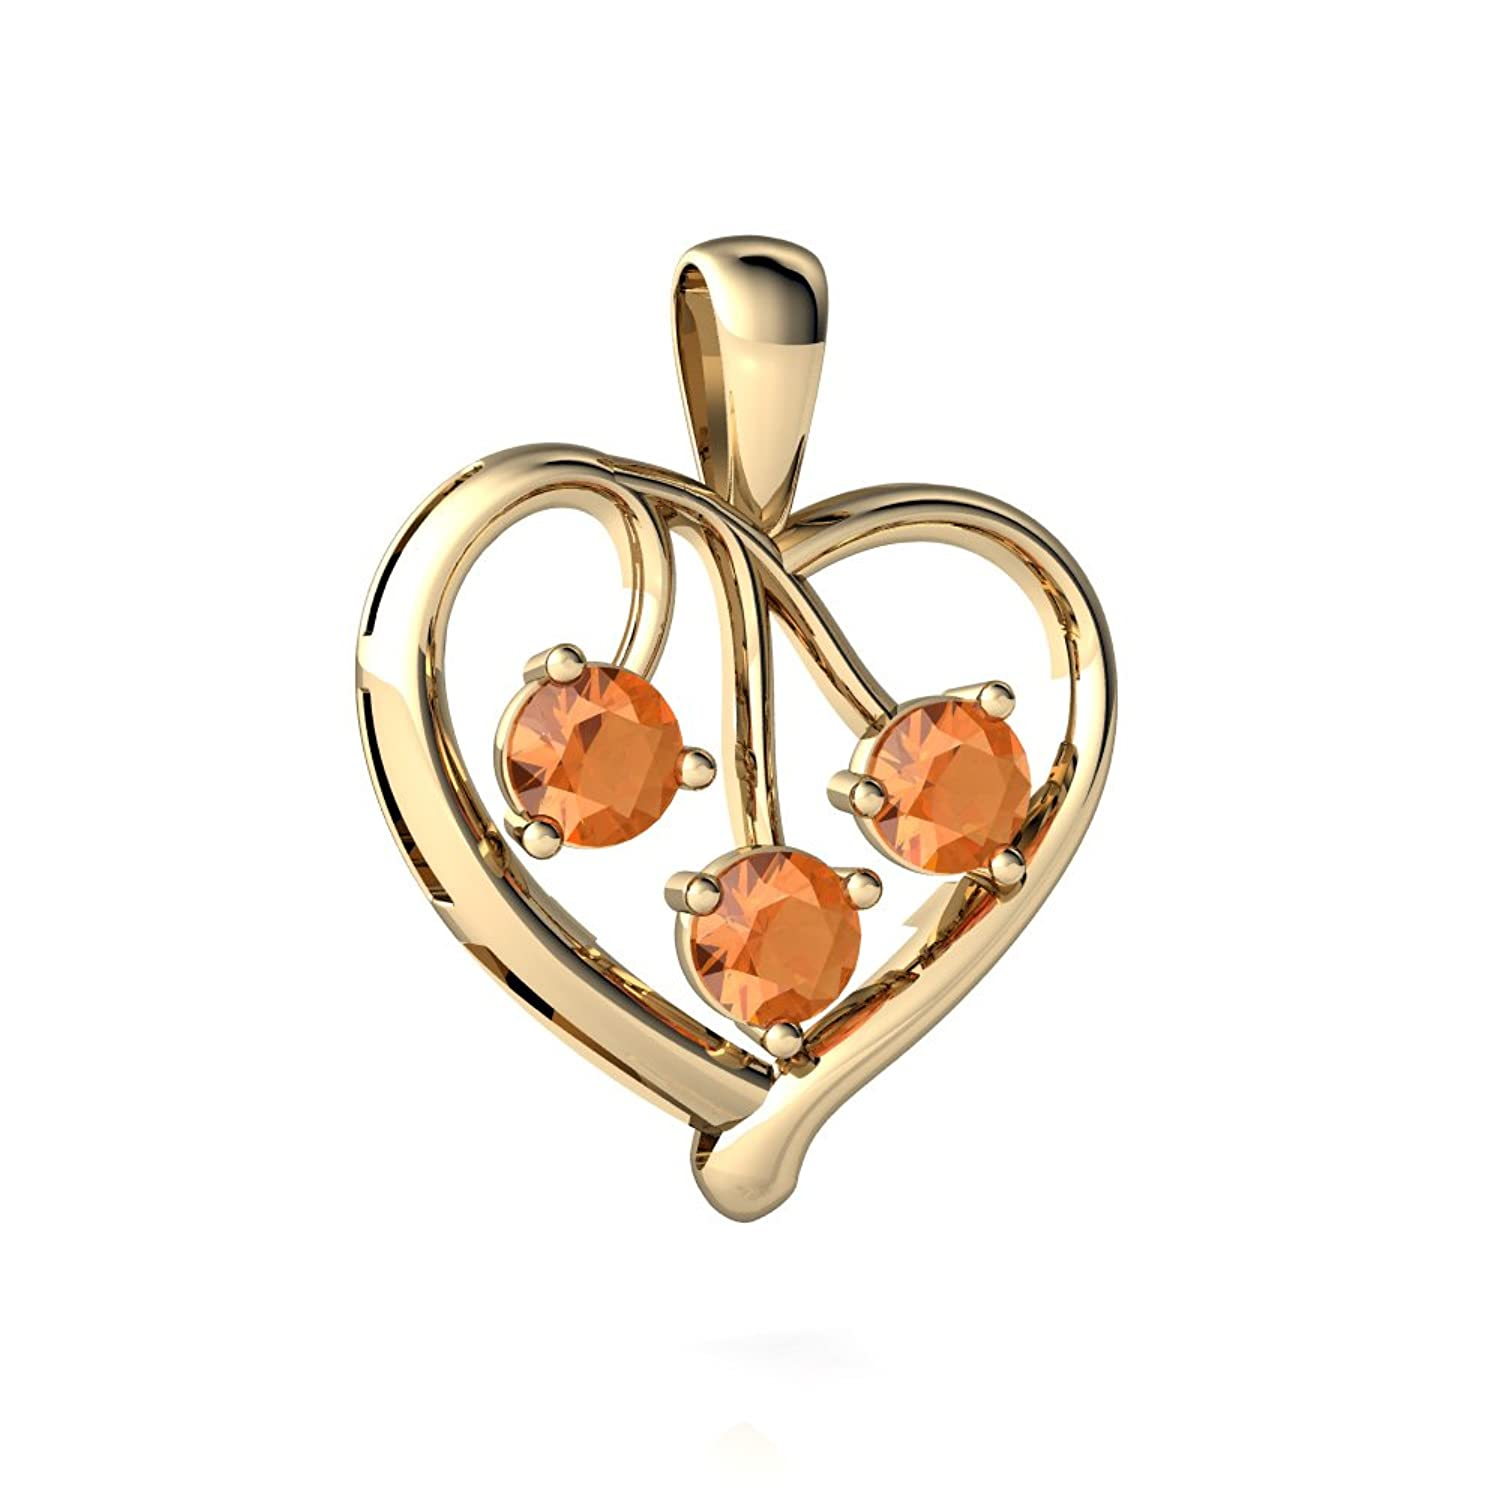 14kt Gold Fire Opal 3.5mm Round Glowing Heart Pendant